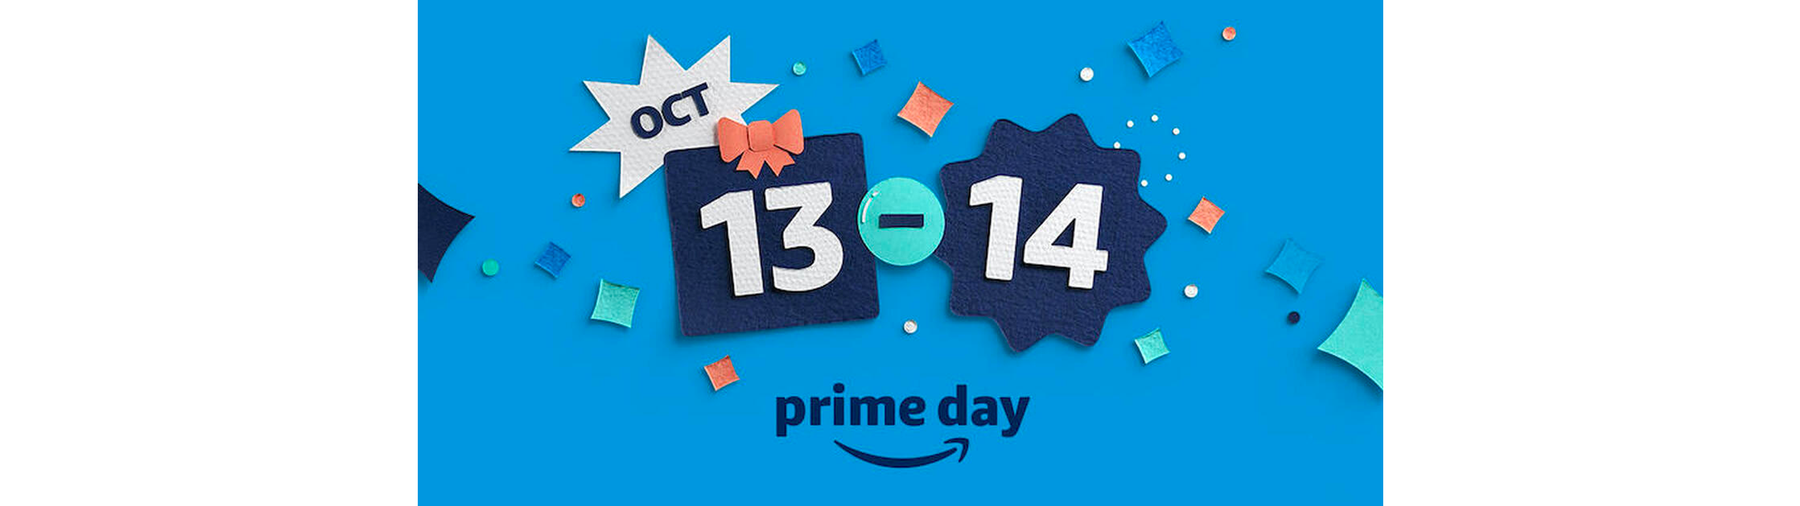 Amazon Prime Day 2020 - The Rolling Deals